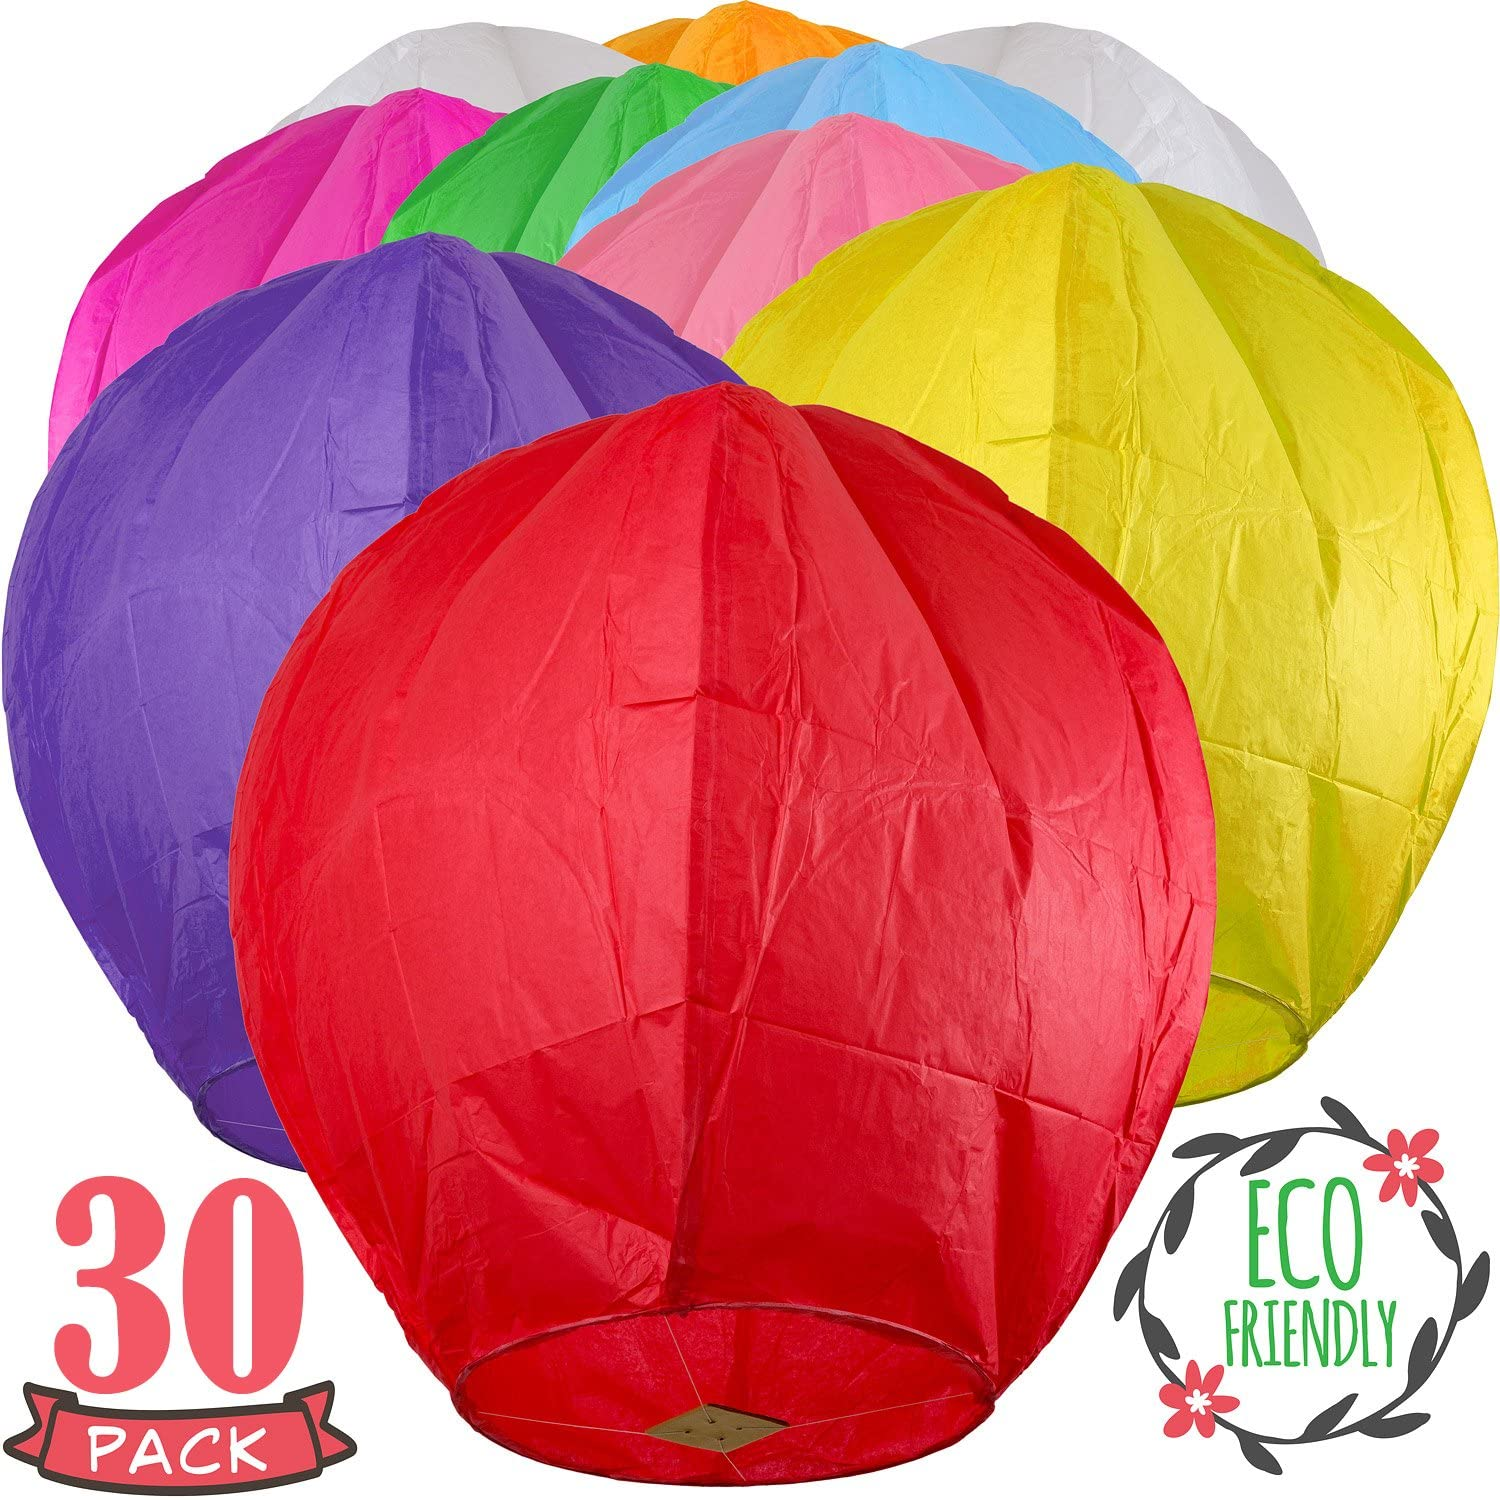 SKY HIGH 30 Pack Colorful Chinese Lanterns